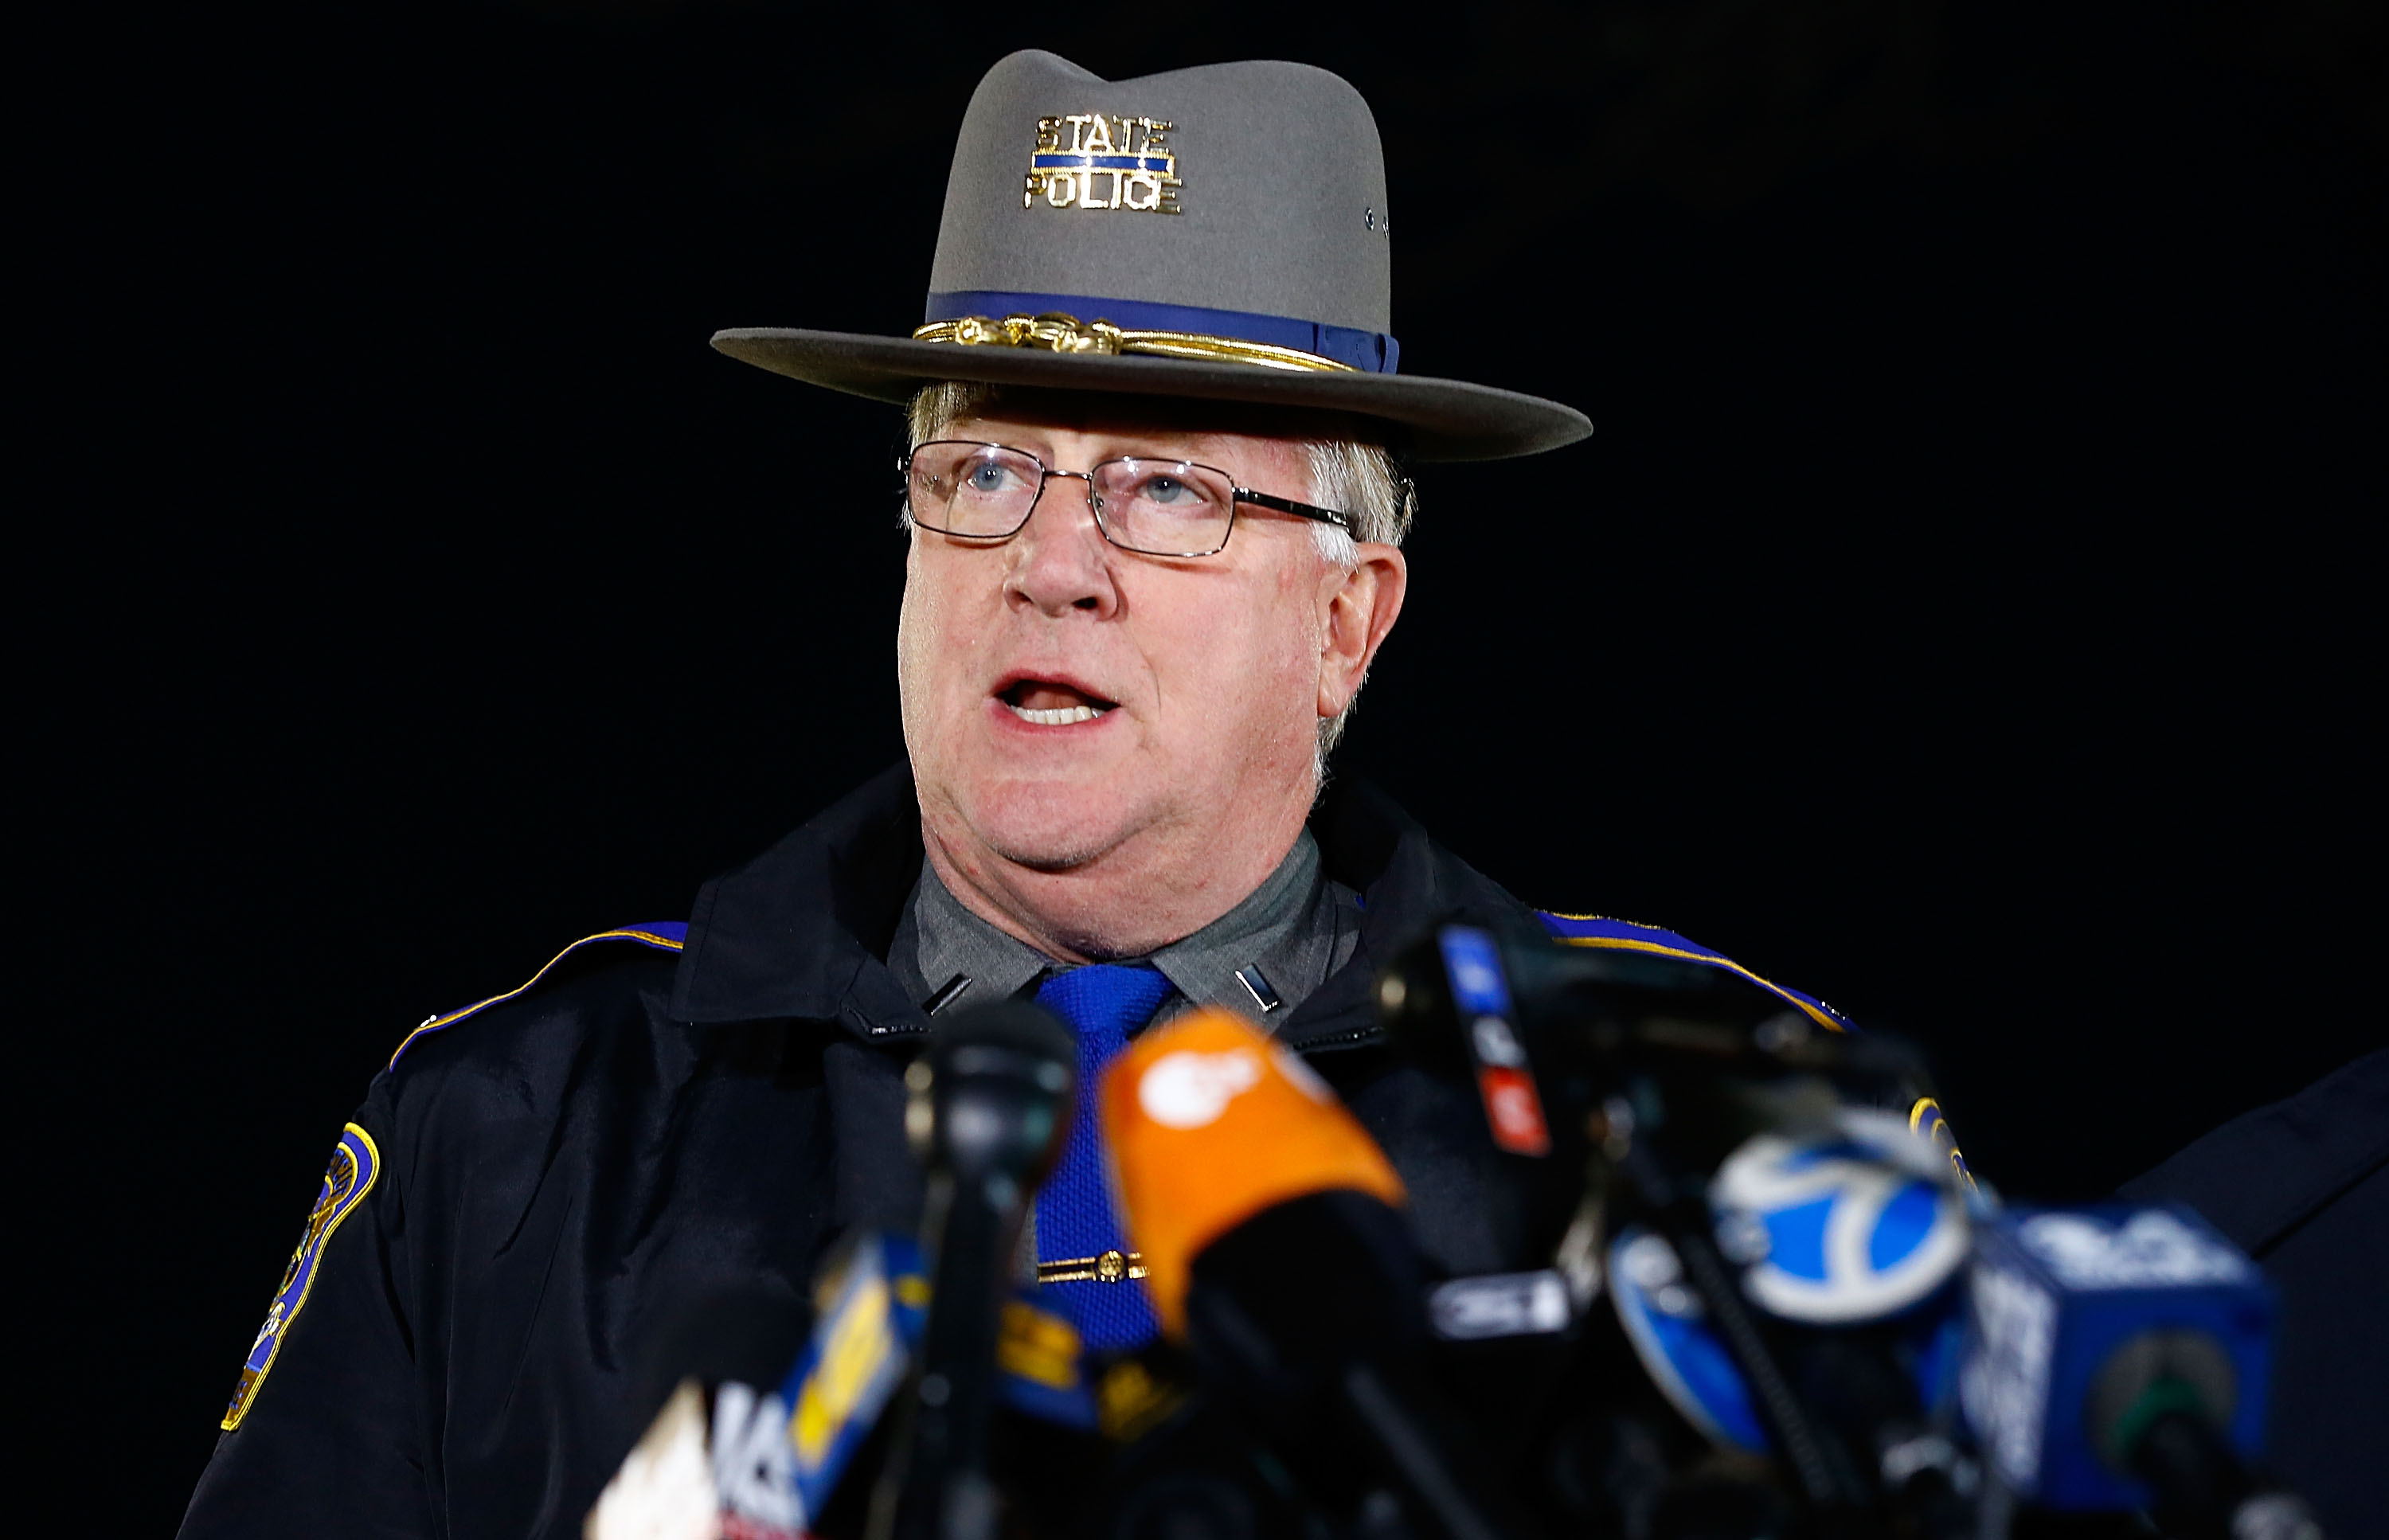 NEWTOWN, CT - DECEMBER 14:  State Police spokesman Lt. J. Paul Vance briefs the media about the elementary school shooting during a press conference at Treadwell Memorial Park on December 14, 2012 in Newtown, Connecticut. According to reports, there are 27 dead, including 20 children, after a gunman identified as Adam Lanza, opened fire in at the Sandy Hook Elementary School in Newtown, Connecticut. The shooter, identified as Adam Lanza was also found dead at the scene. (Photo by Jared Wickerham/Getty Images)